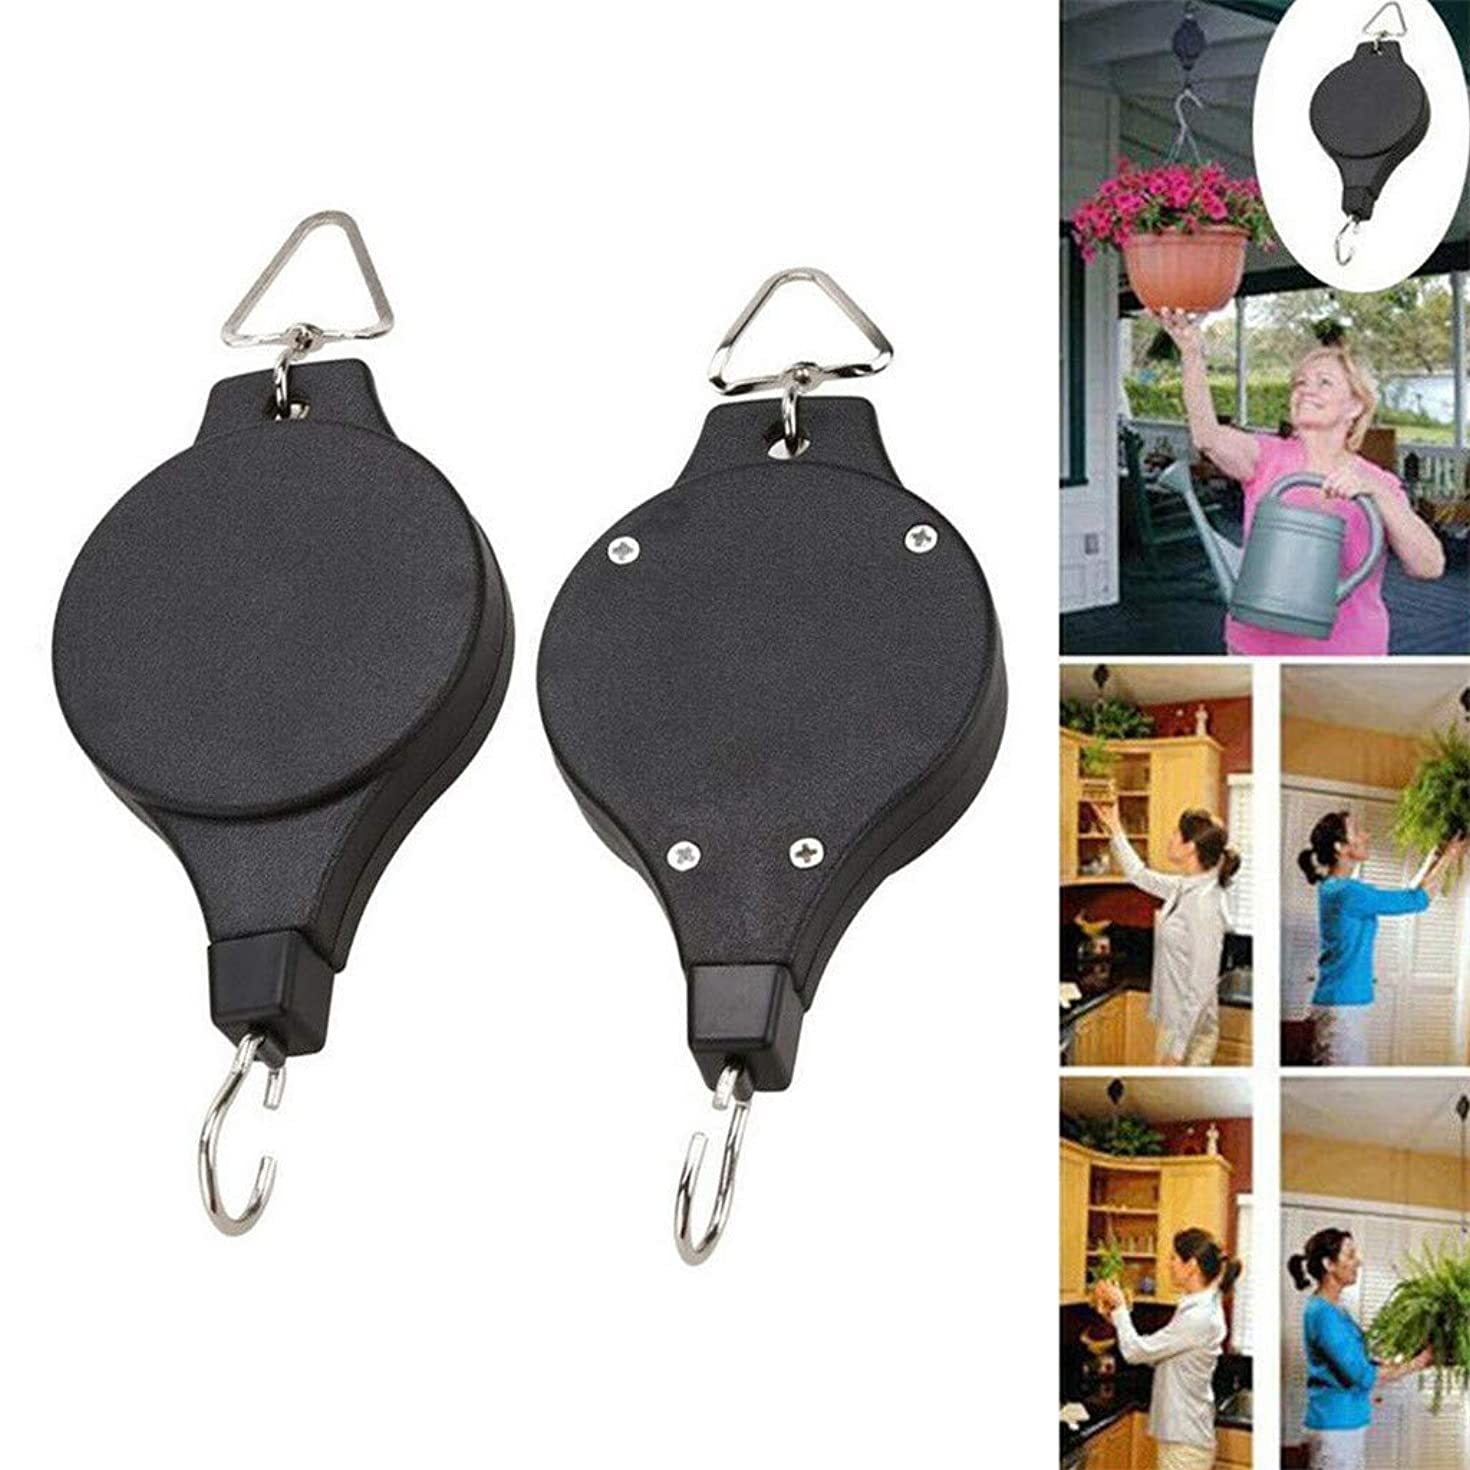 ??Ywoow?? Basket Hooks, Retractable Pulley Hook Hanging Pull Down Hanger for Flower Plant Baskets Garden